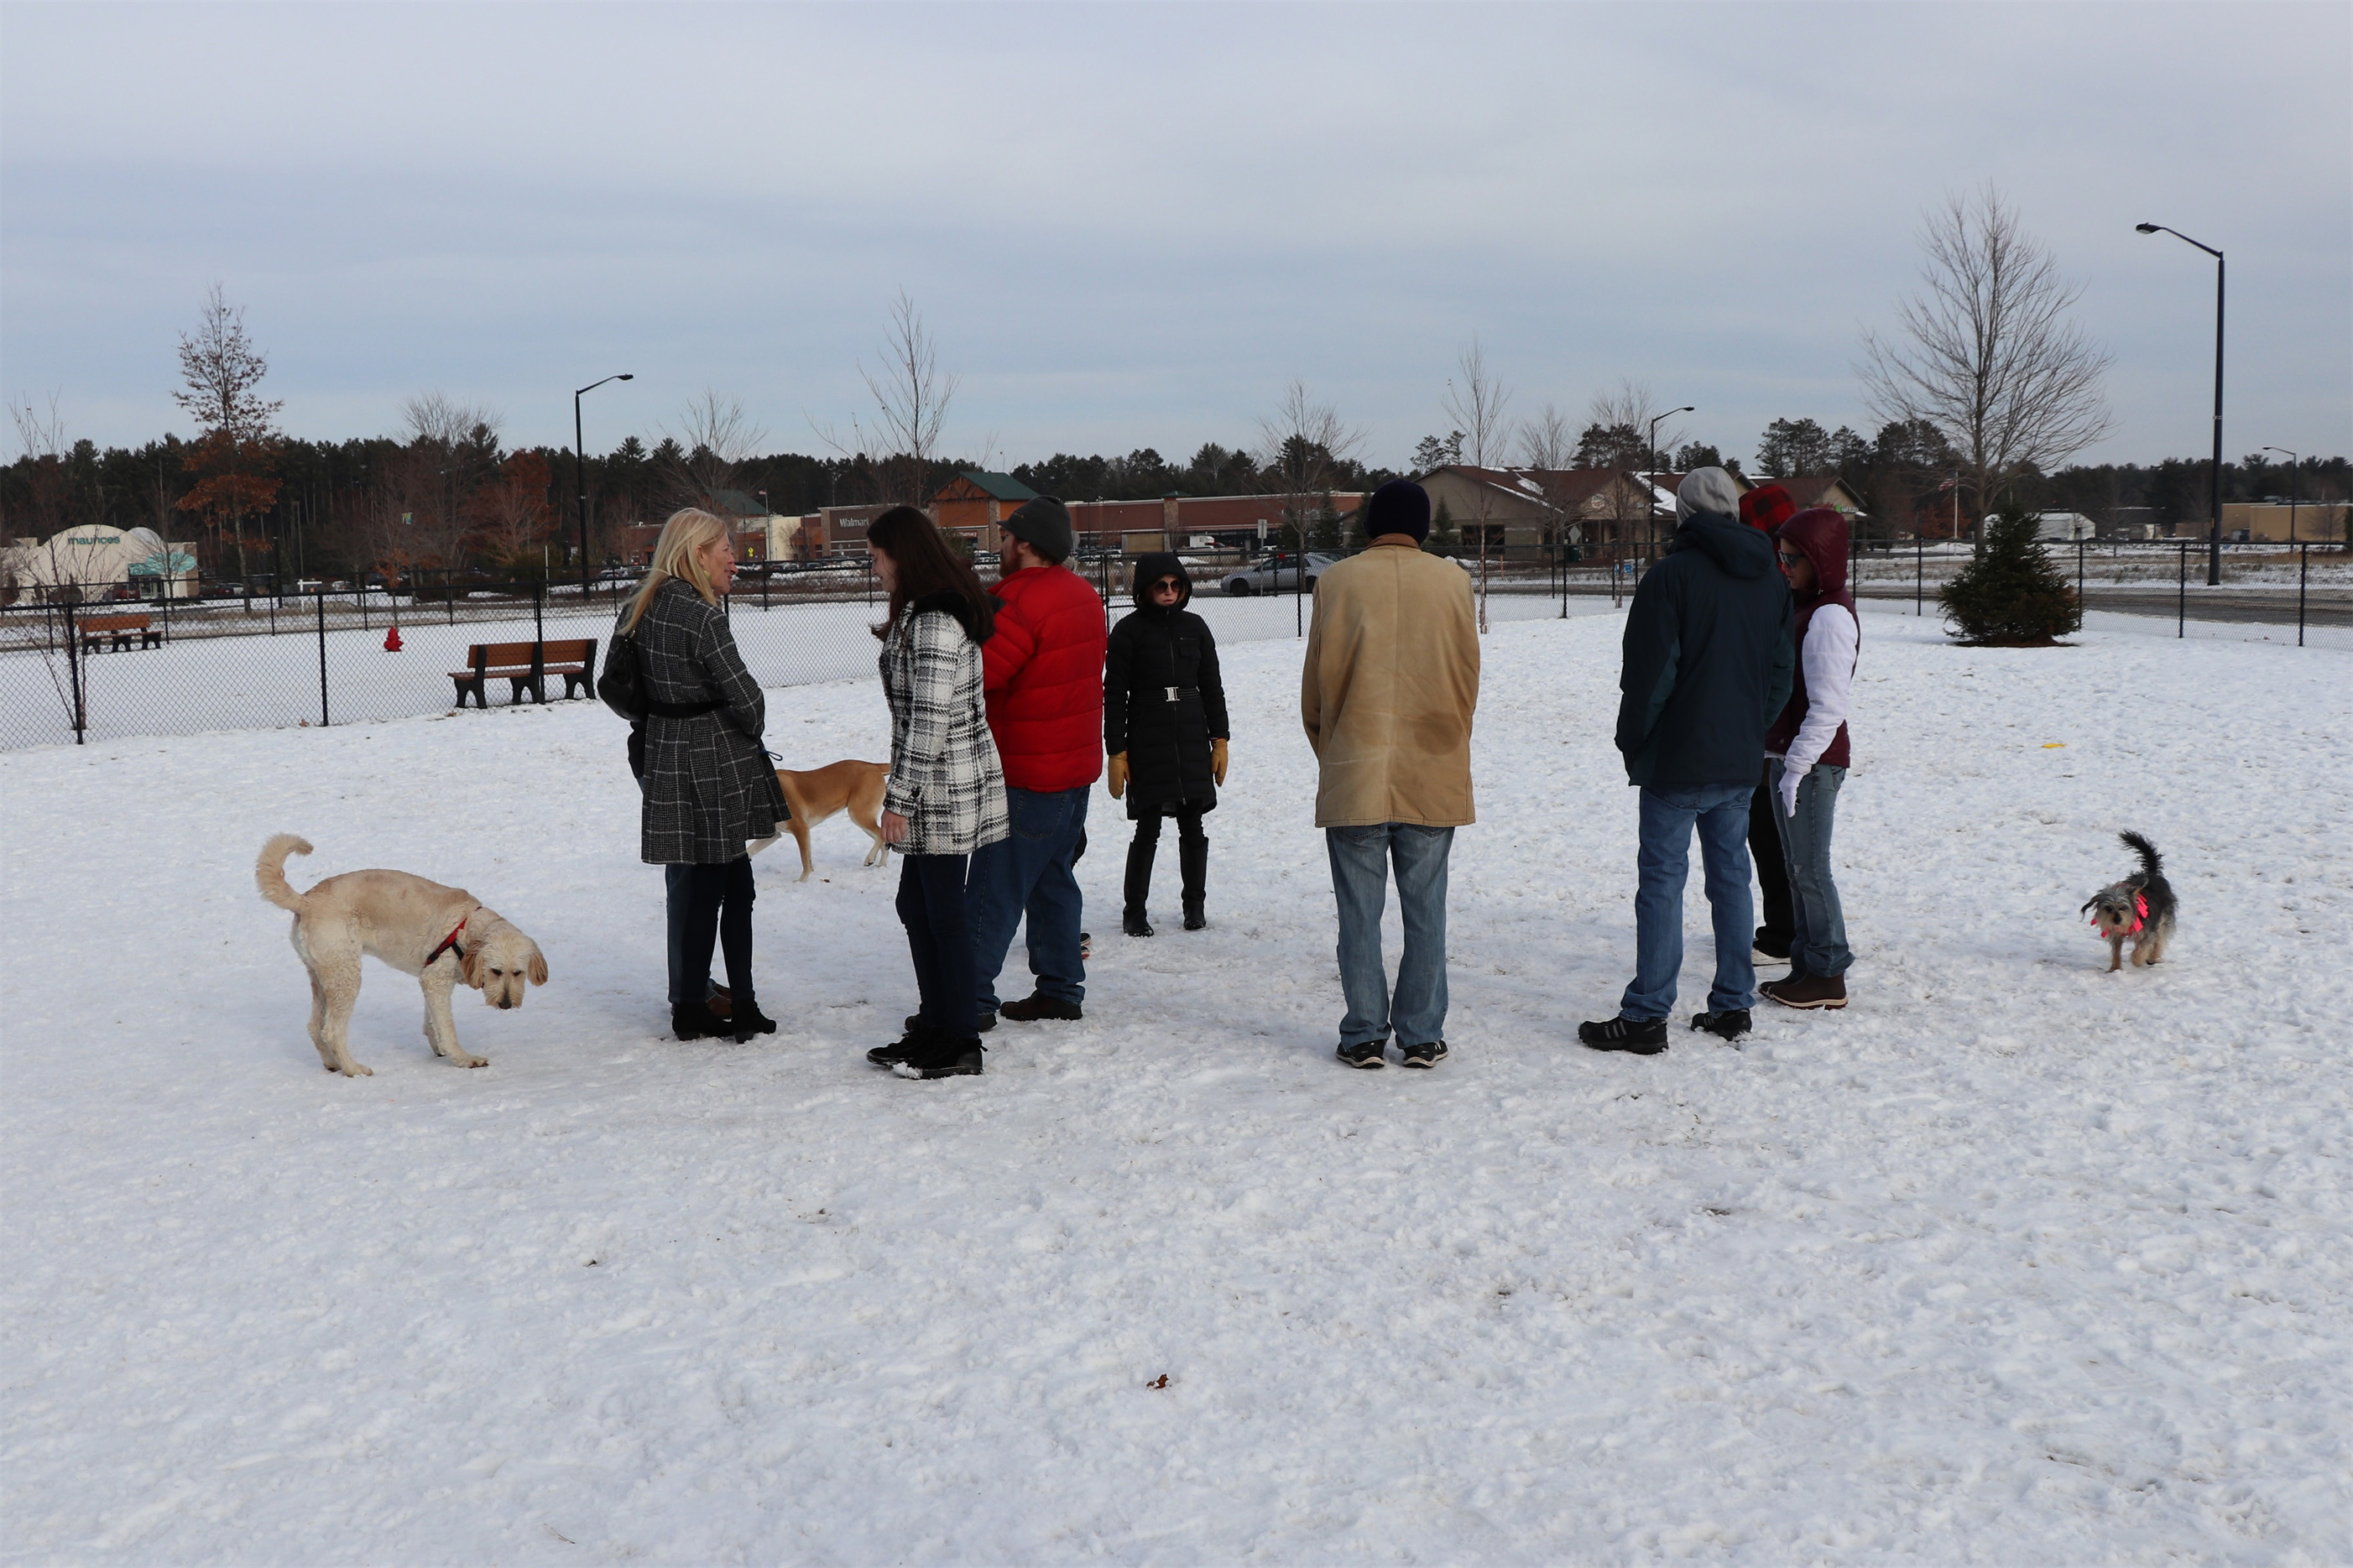 It's a busy afternoon at the Lakeland Area Dog Park in Minocqua. Kim Johnson photo